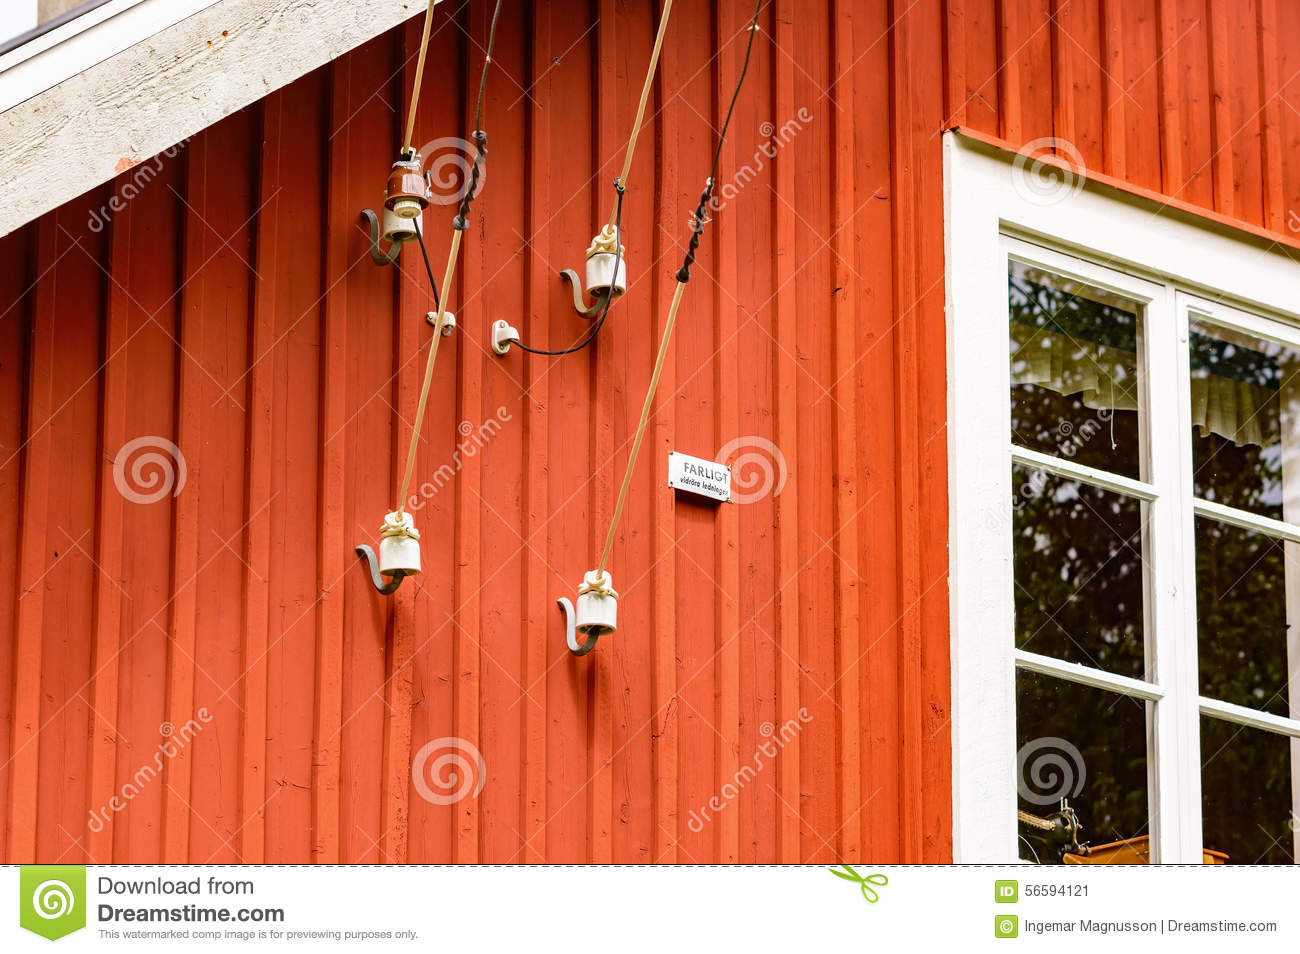 Electric wire on house stock image. Image of electricity - 56594121